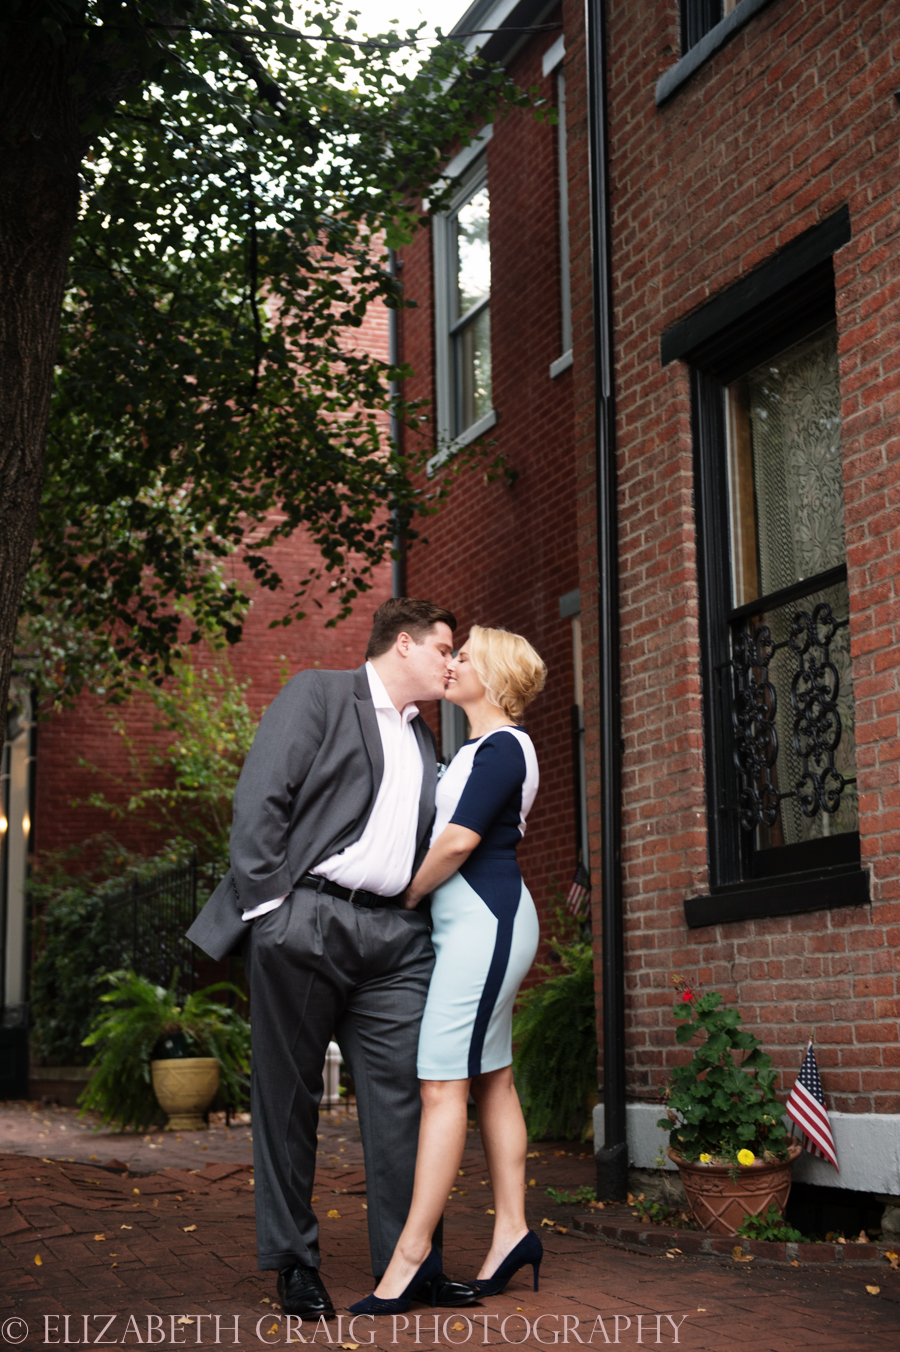 Pittsburgh North Side Engagement Photography | Elizabeth Craig Photography-017